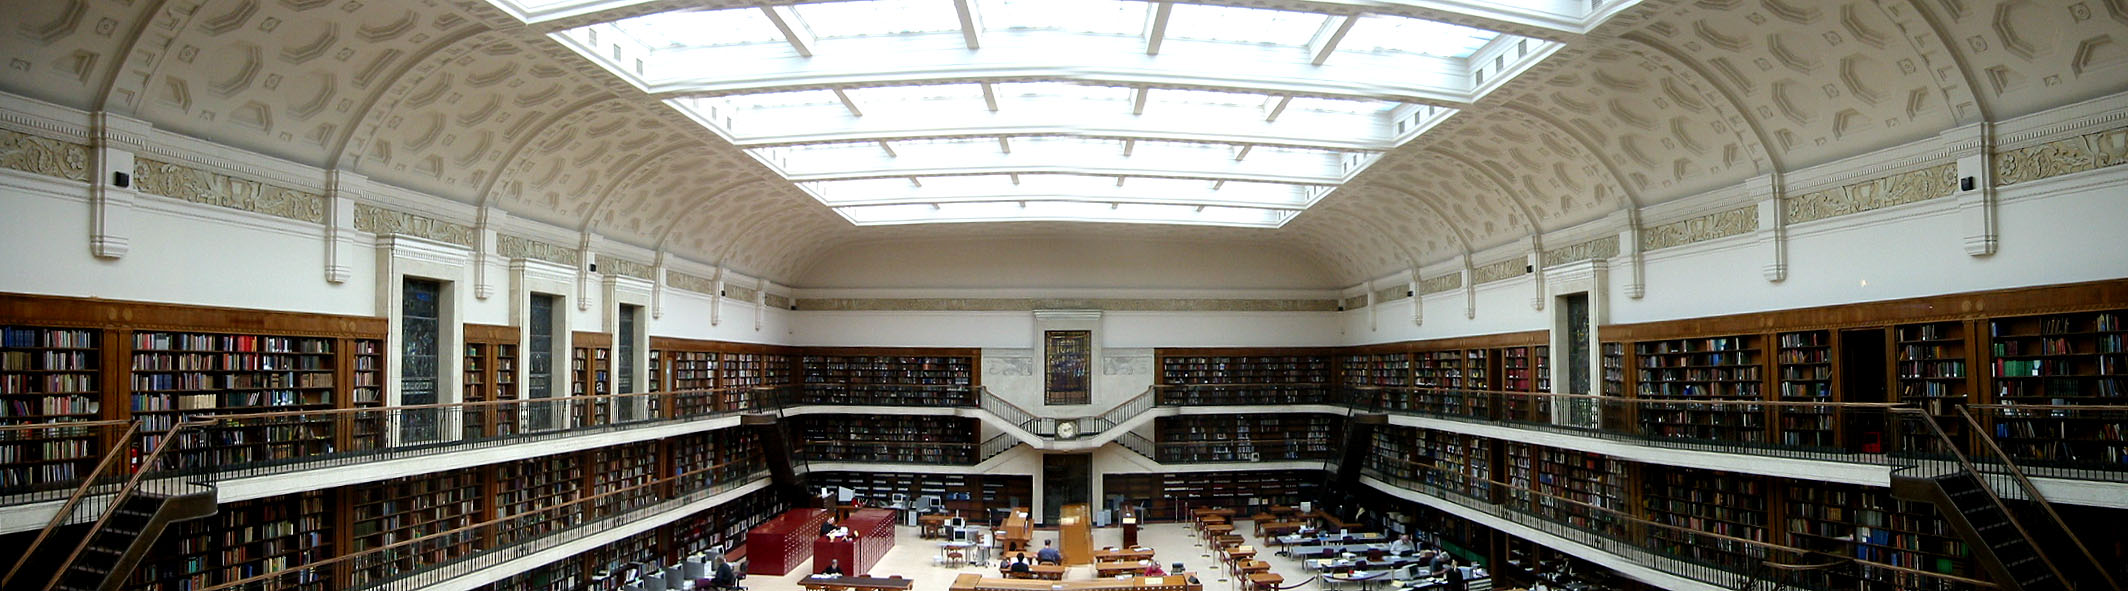 State Library of NSW.jpg